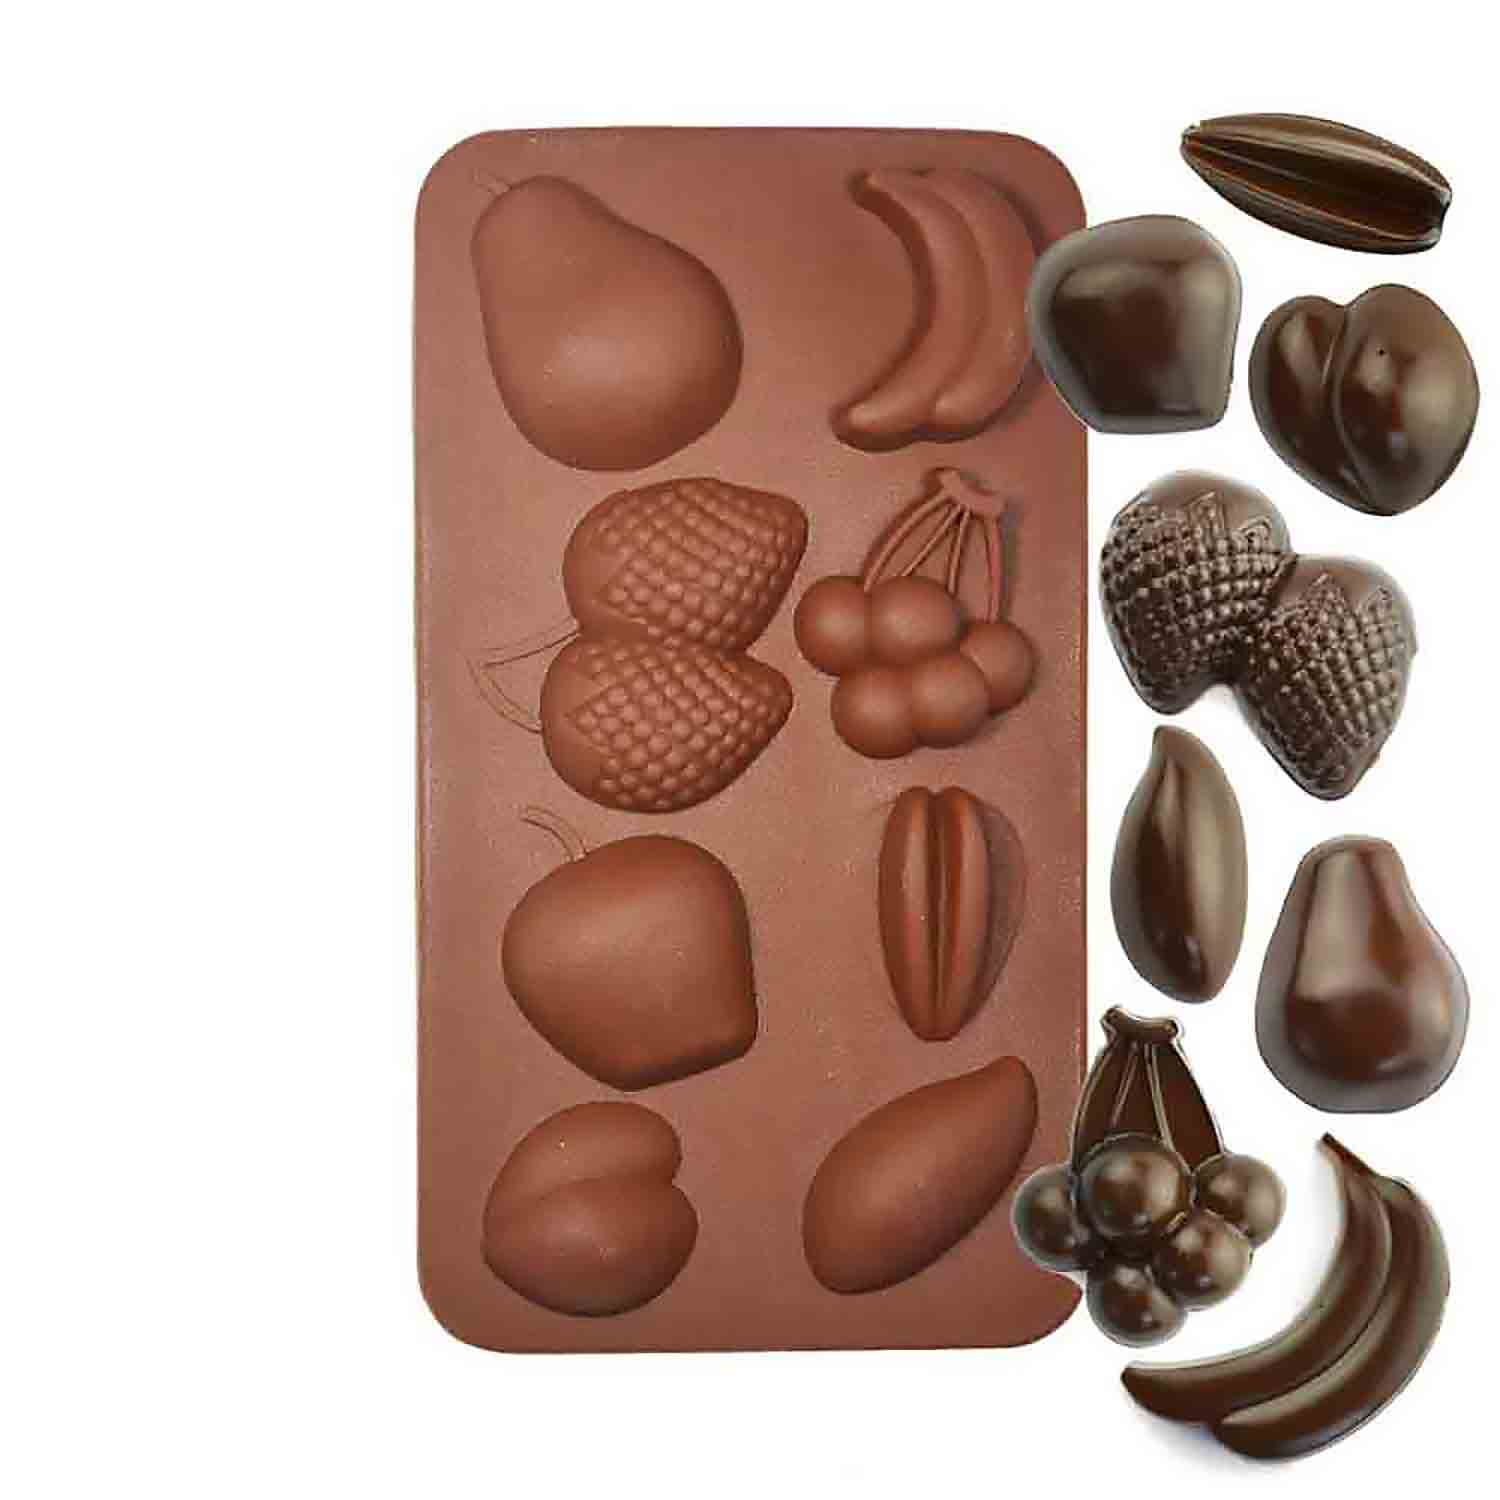 Fruit Silicone Chocolate Candy Mold